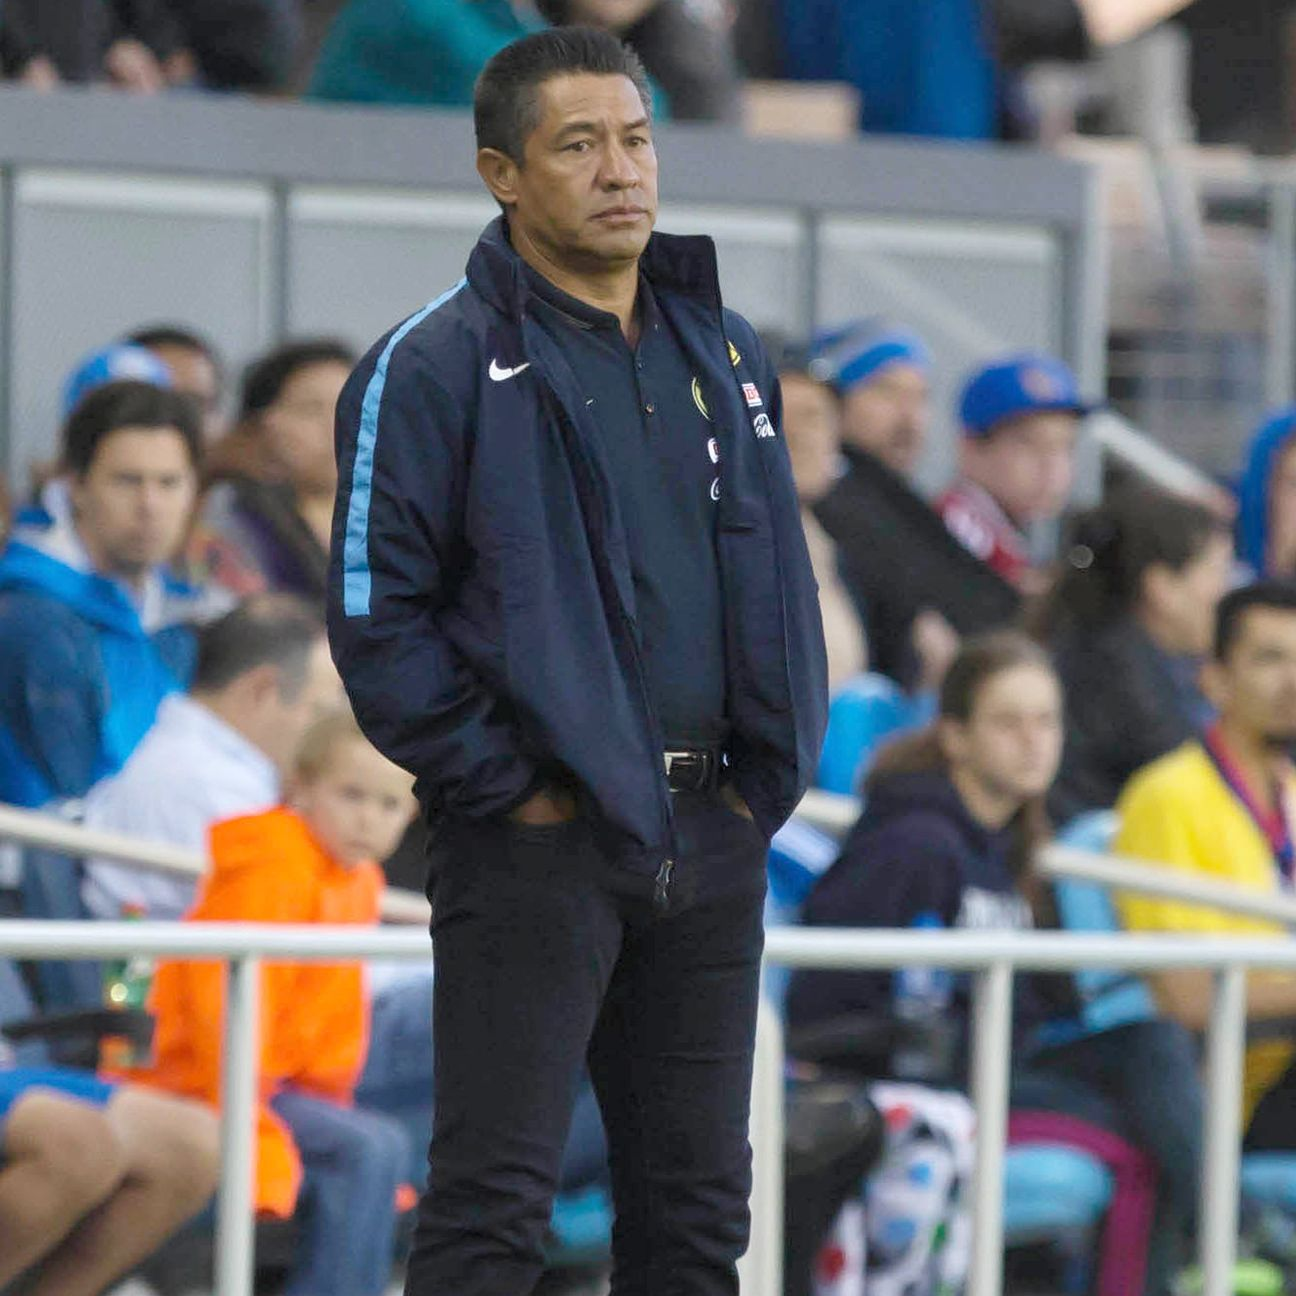 Club America begin the 2015 Apertura under the guidance of Ignacio Ambriz, the club's third coach in as many seasons.